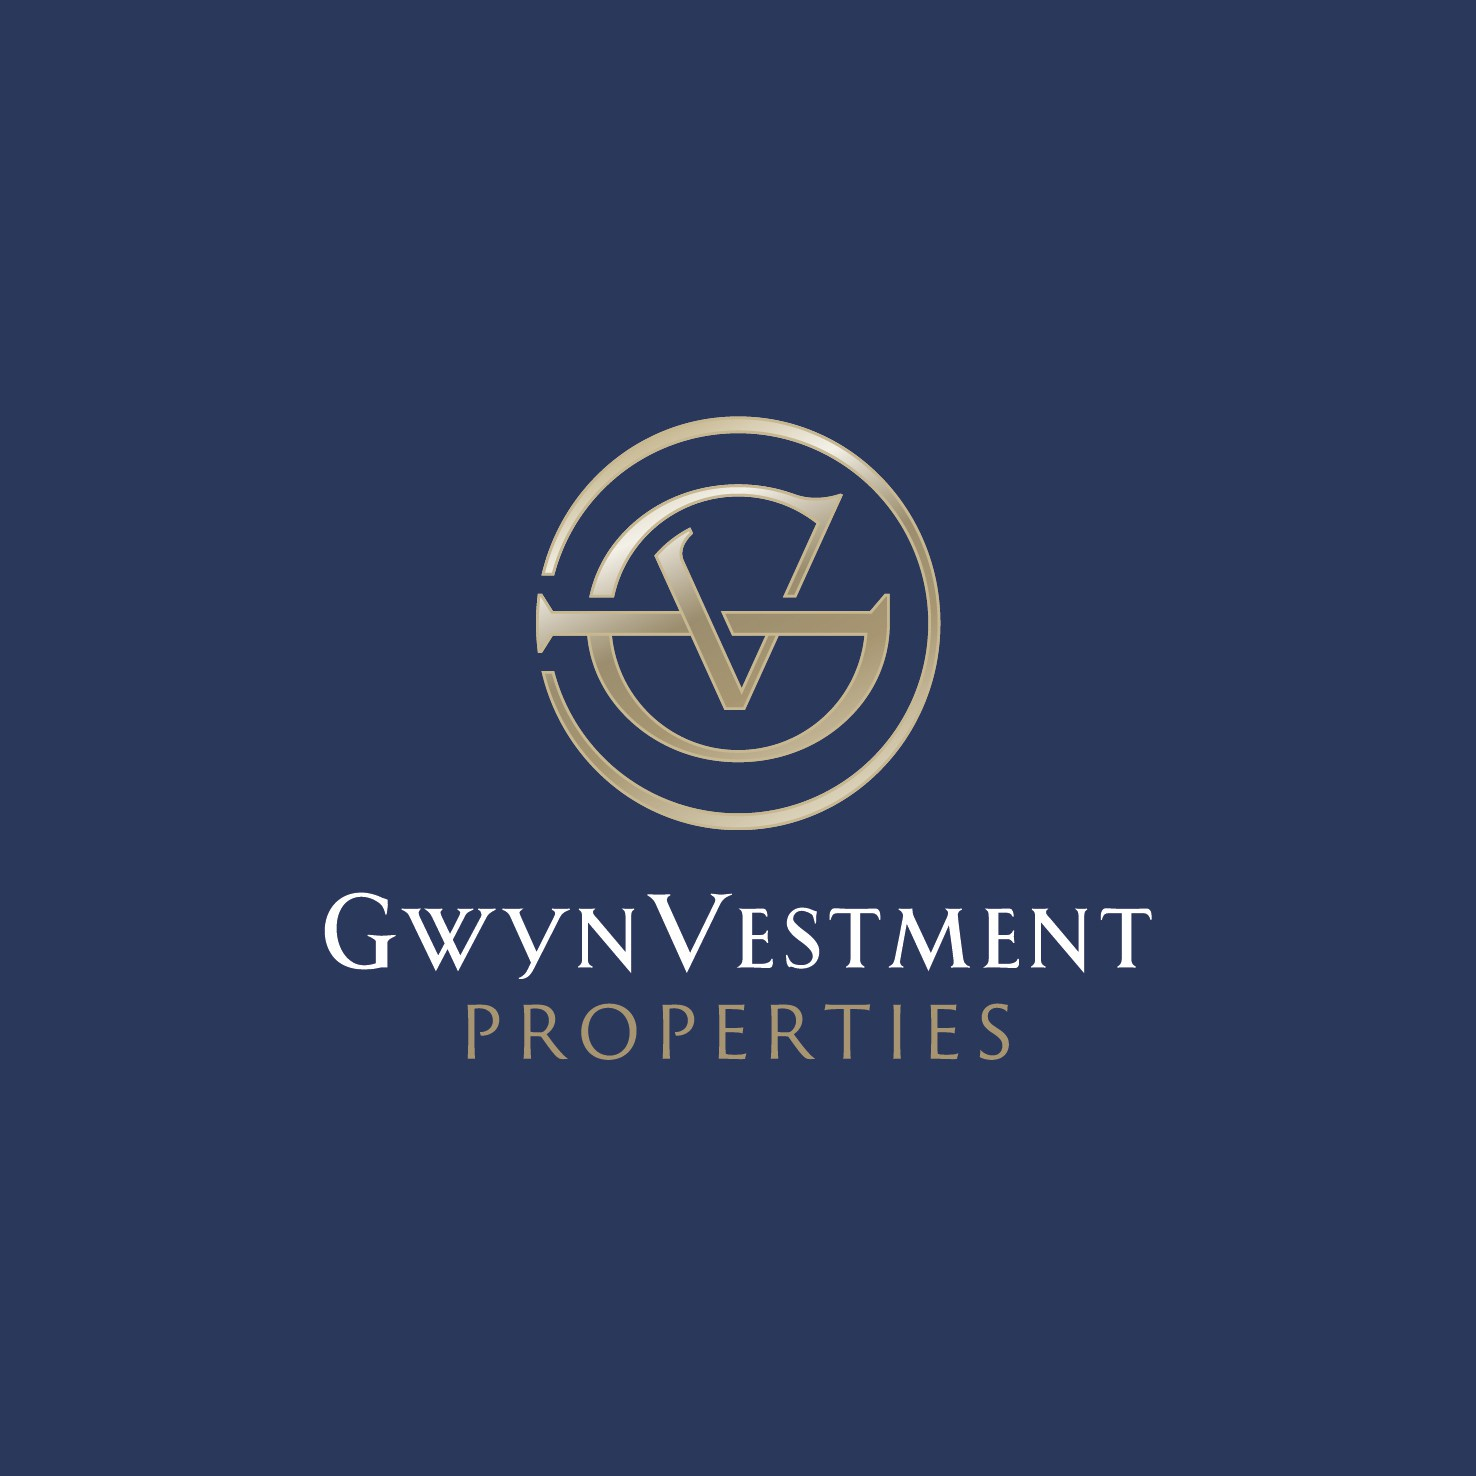 Create a classy logo for a wealth building company